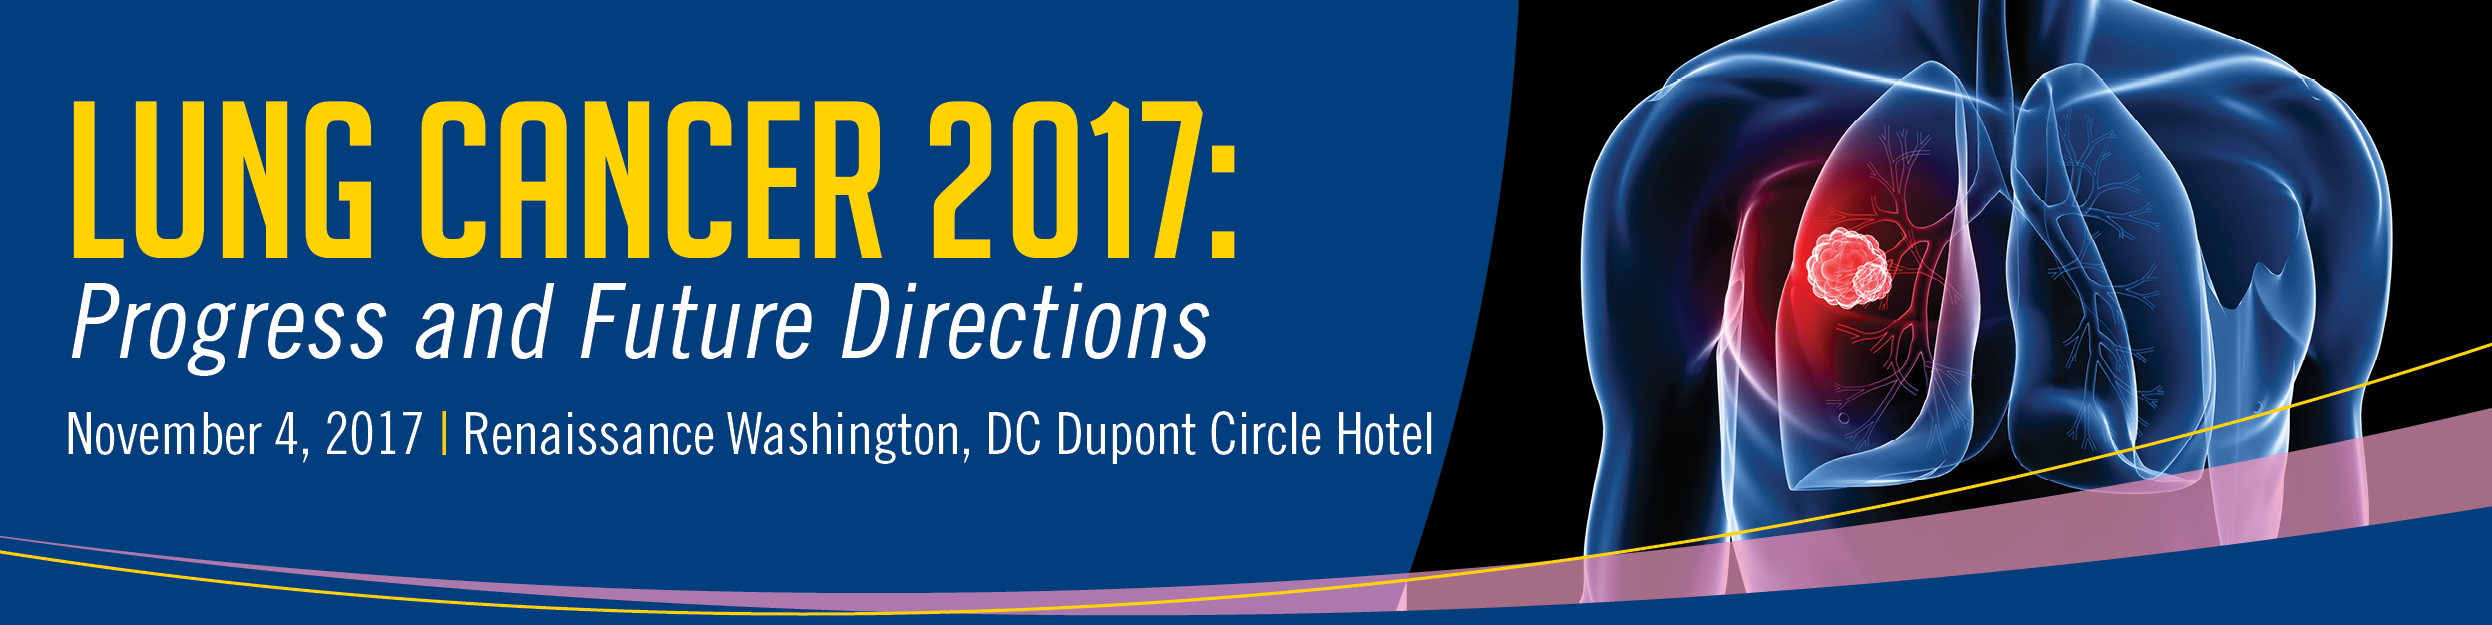 Lung Cancer 2017: Progress and Future Directions Banner